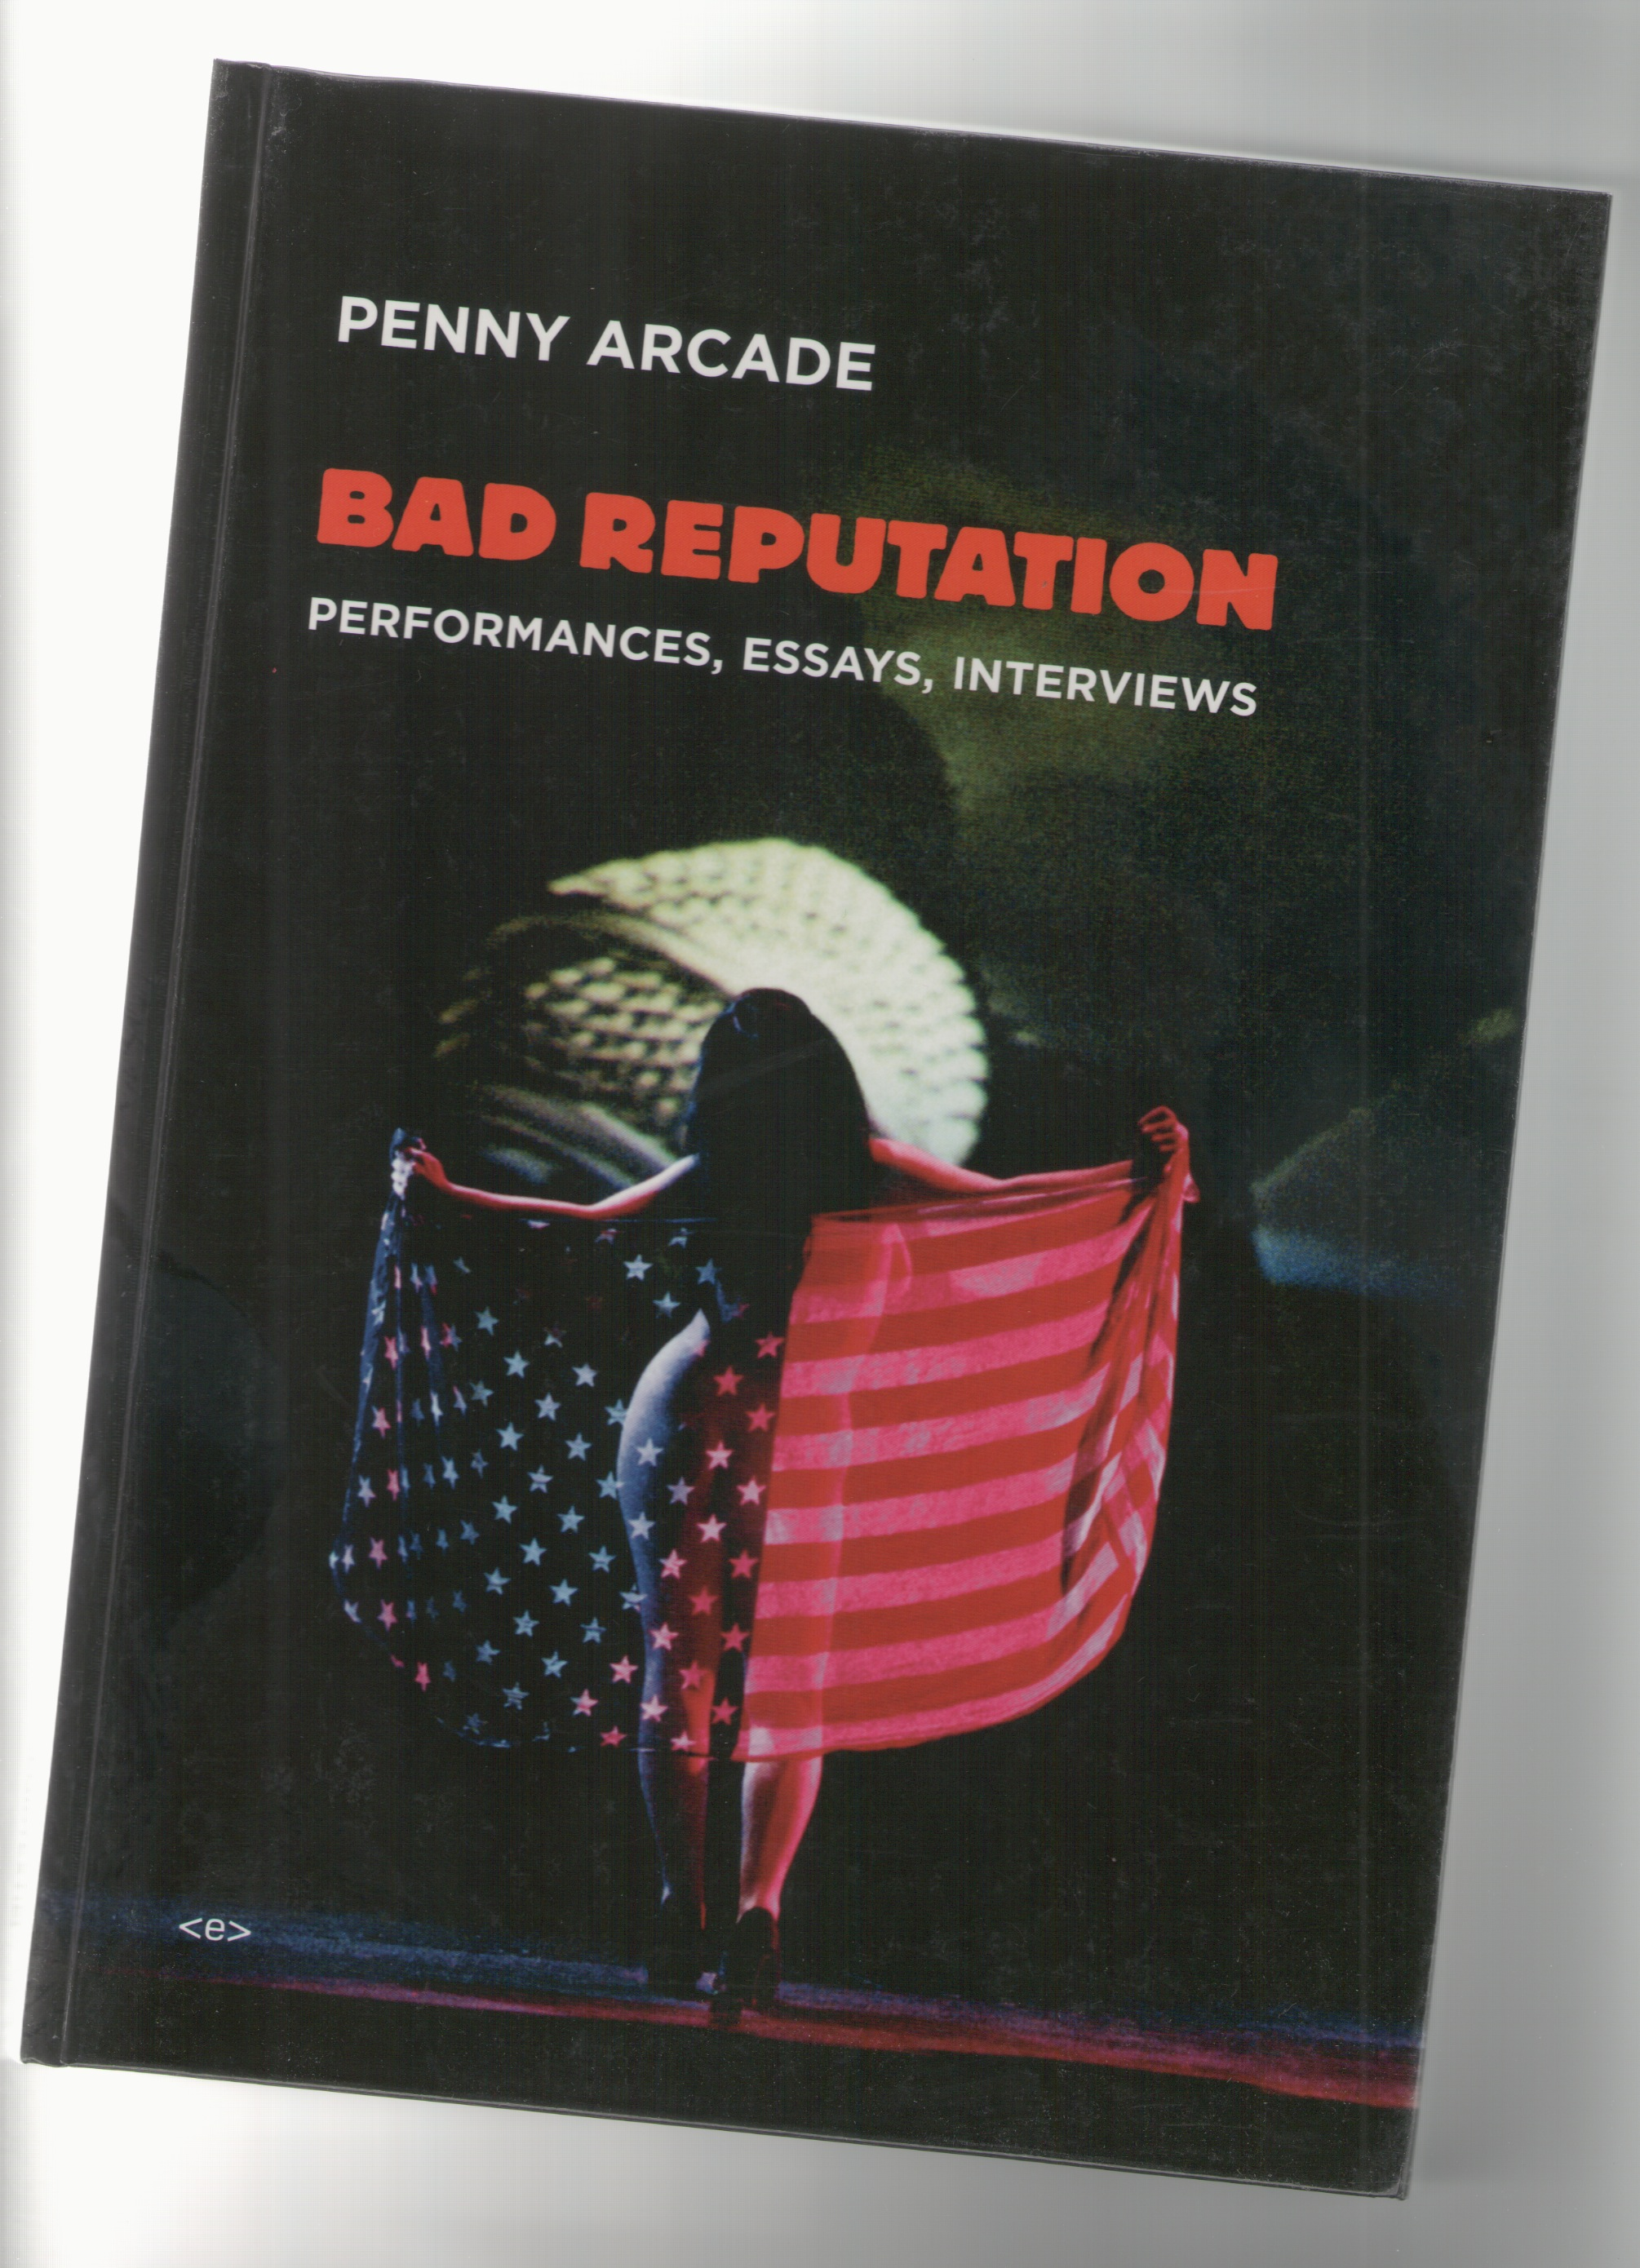 ARCADE, Penny - Bad Reputation. Performances, Essays, Interviews